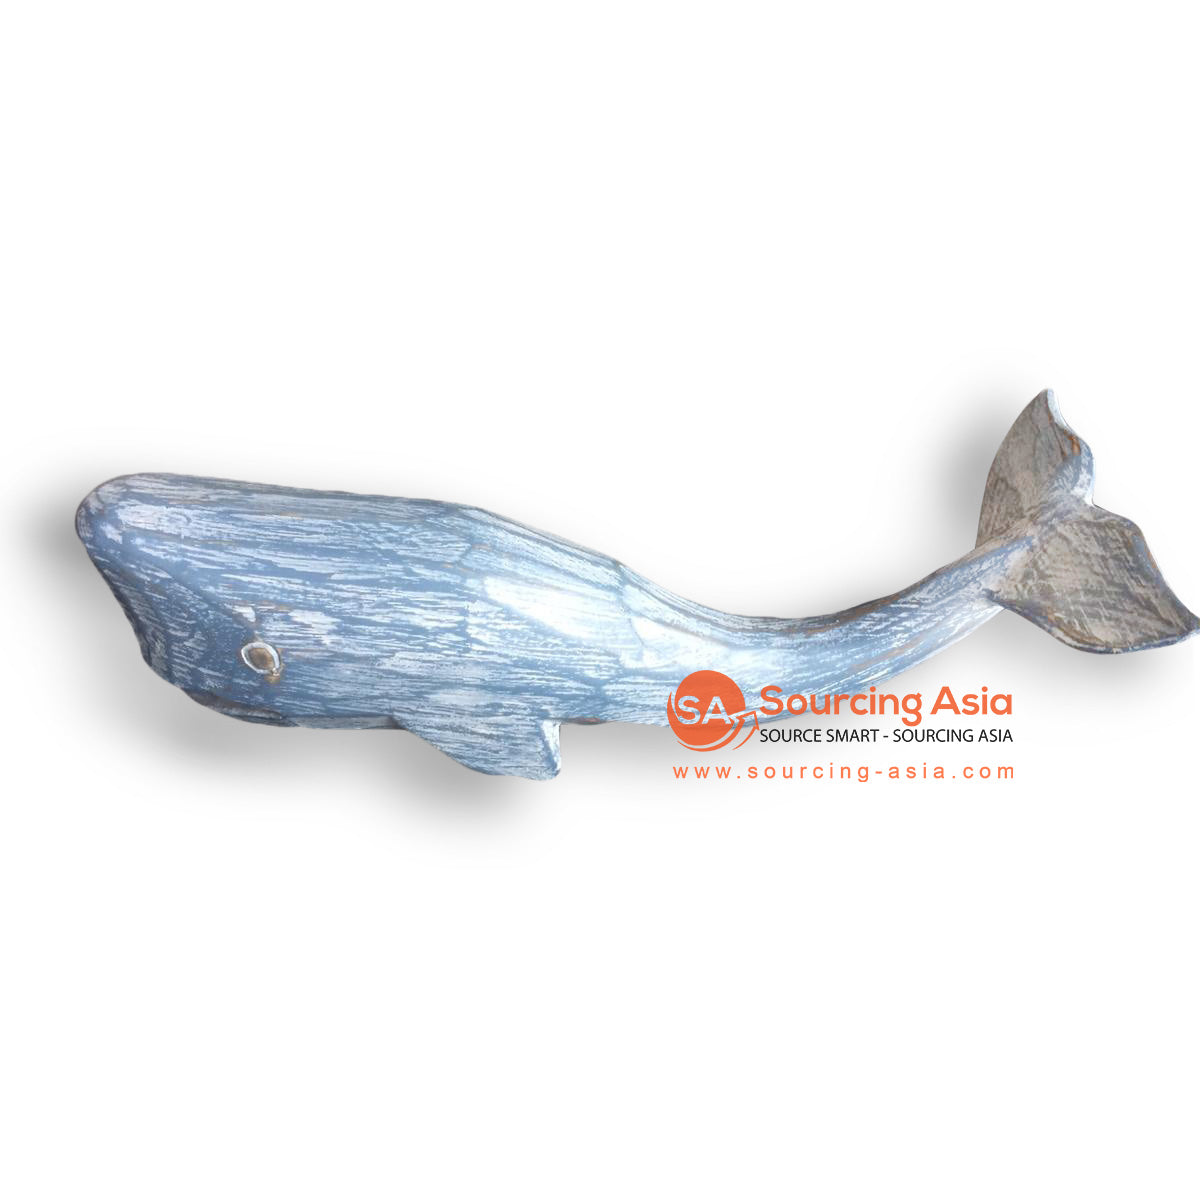 SLG014-1 WOODEN WHALE - BLUE